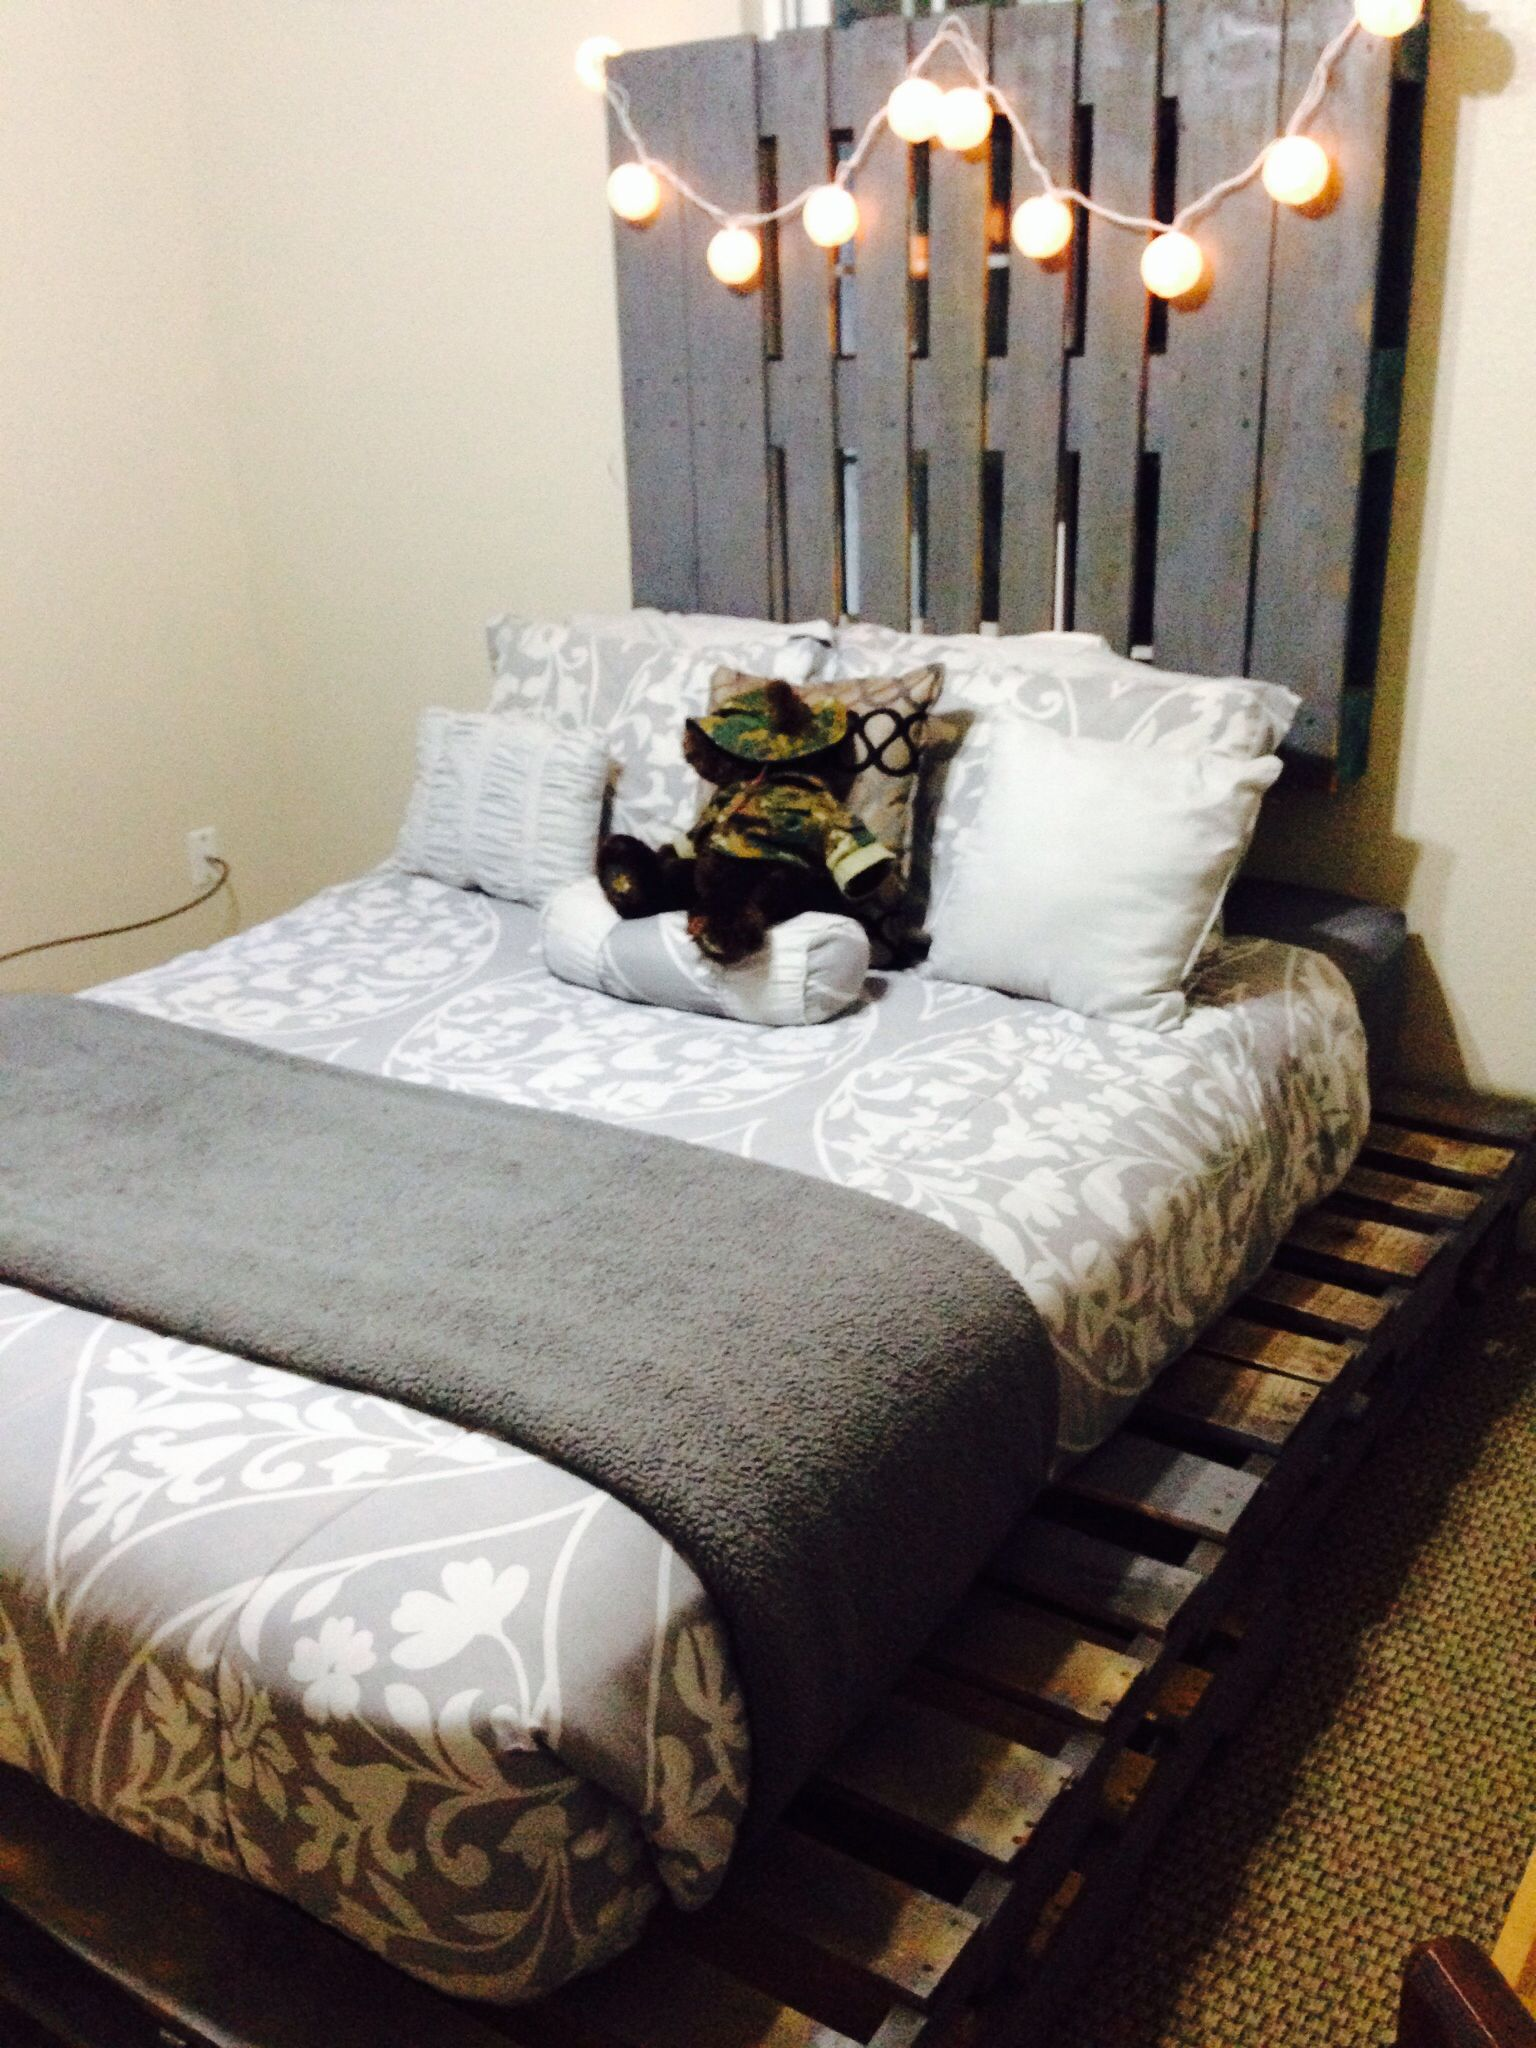 Pallet bed and headboard #pallets #bed #headboard #DIY #grey | DIY ...